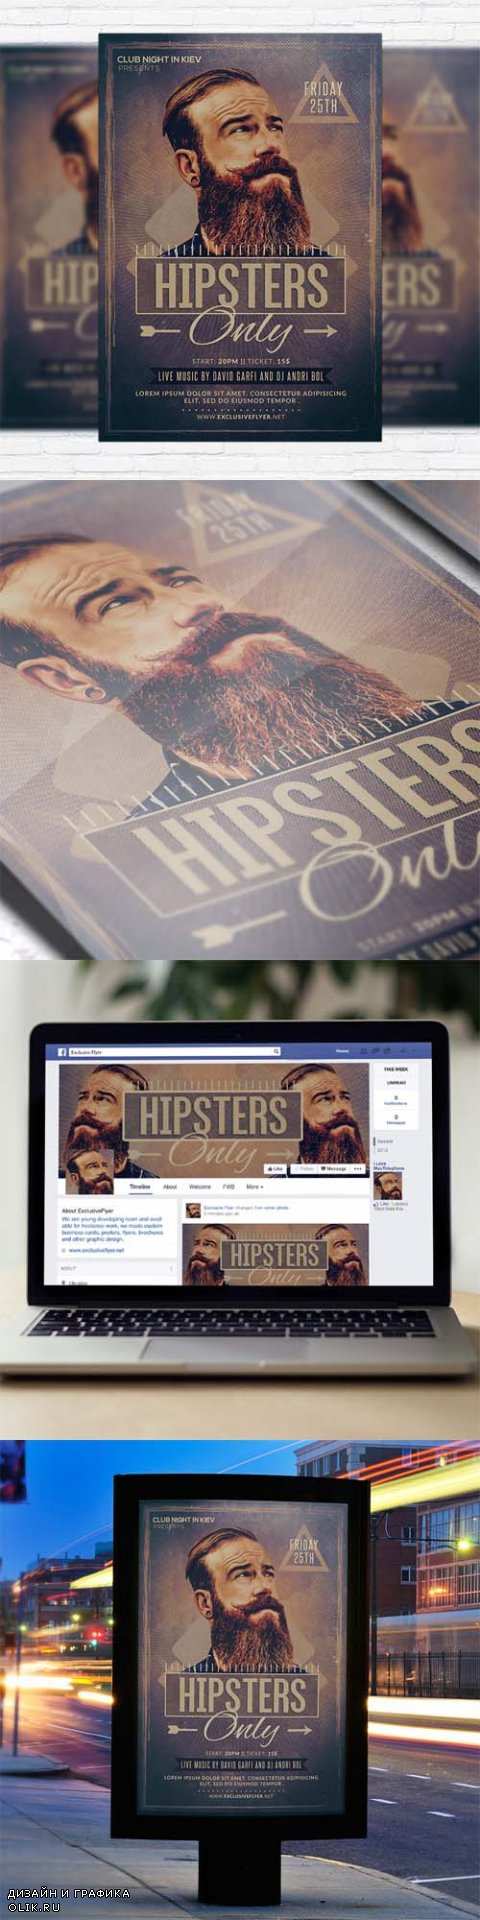 Flyer Template - Hipsters Only + Facebook Cover